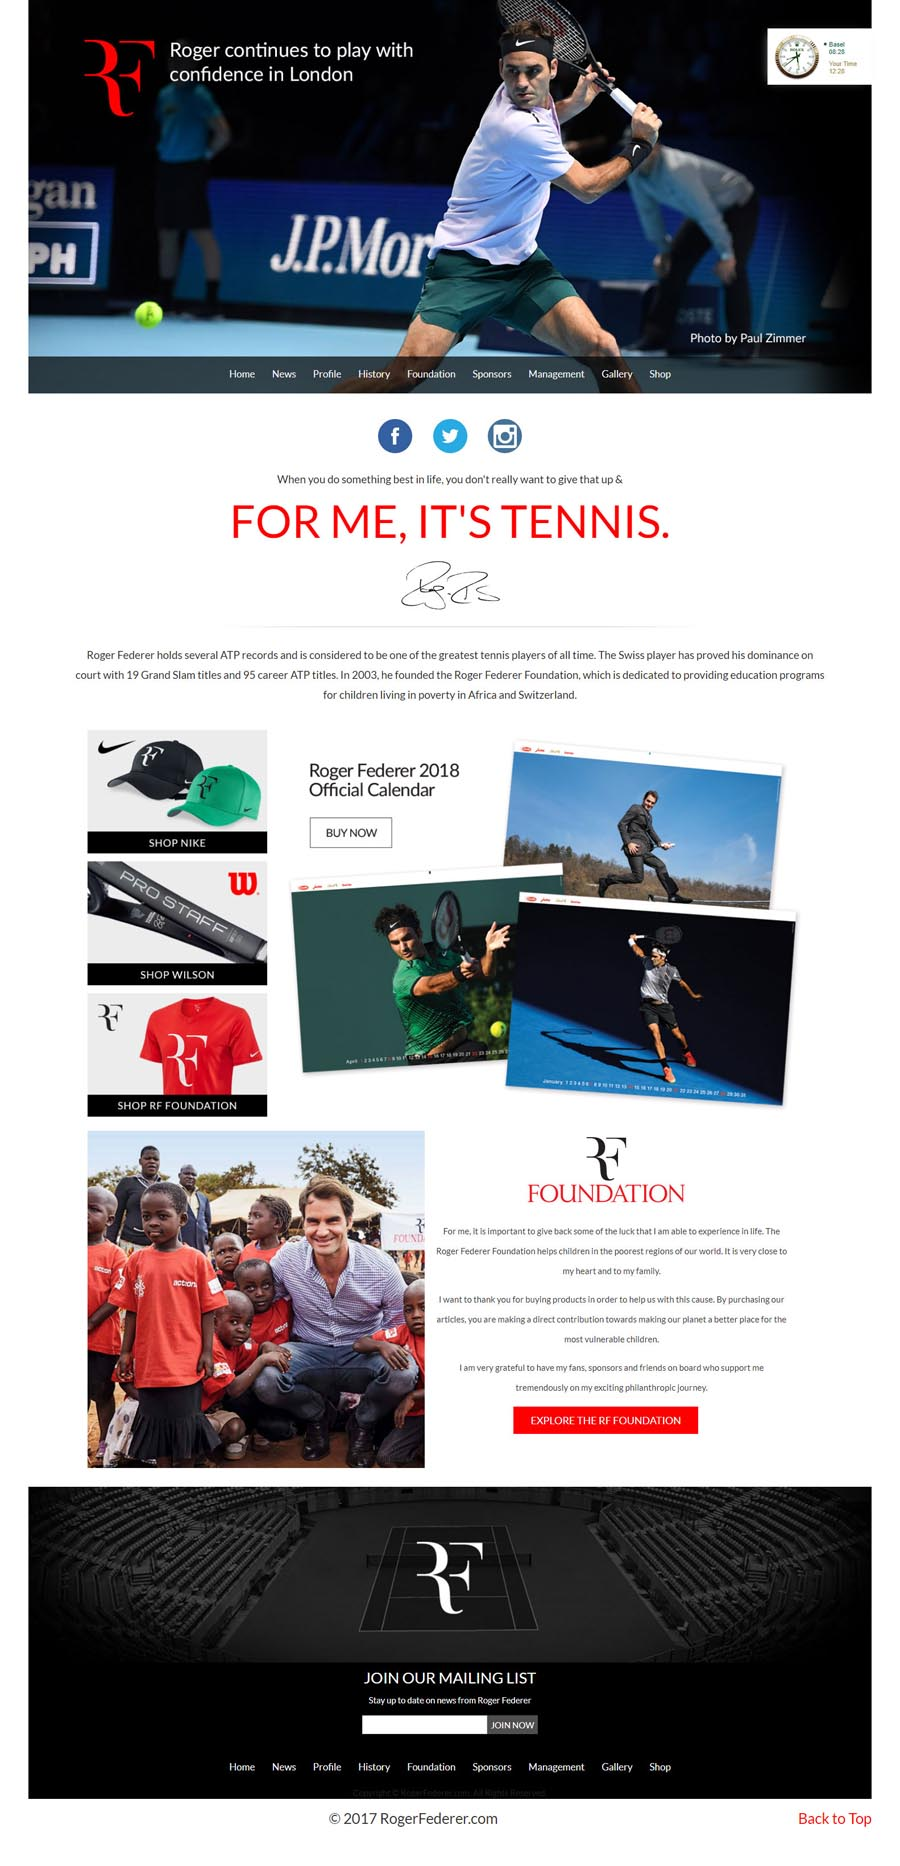 Roger Federer Tennis Player Celebrity Website Design